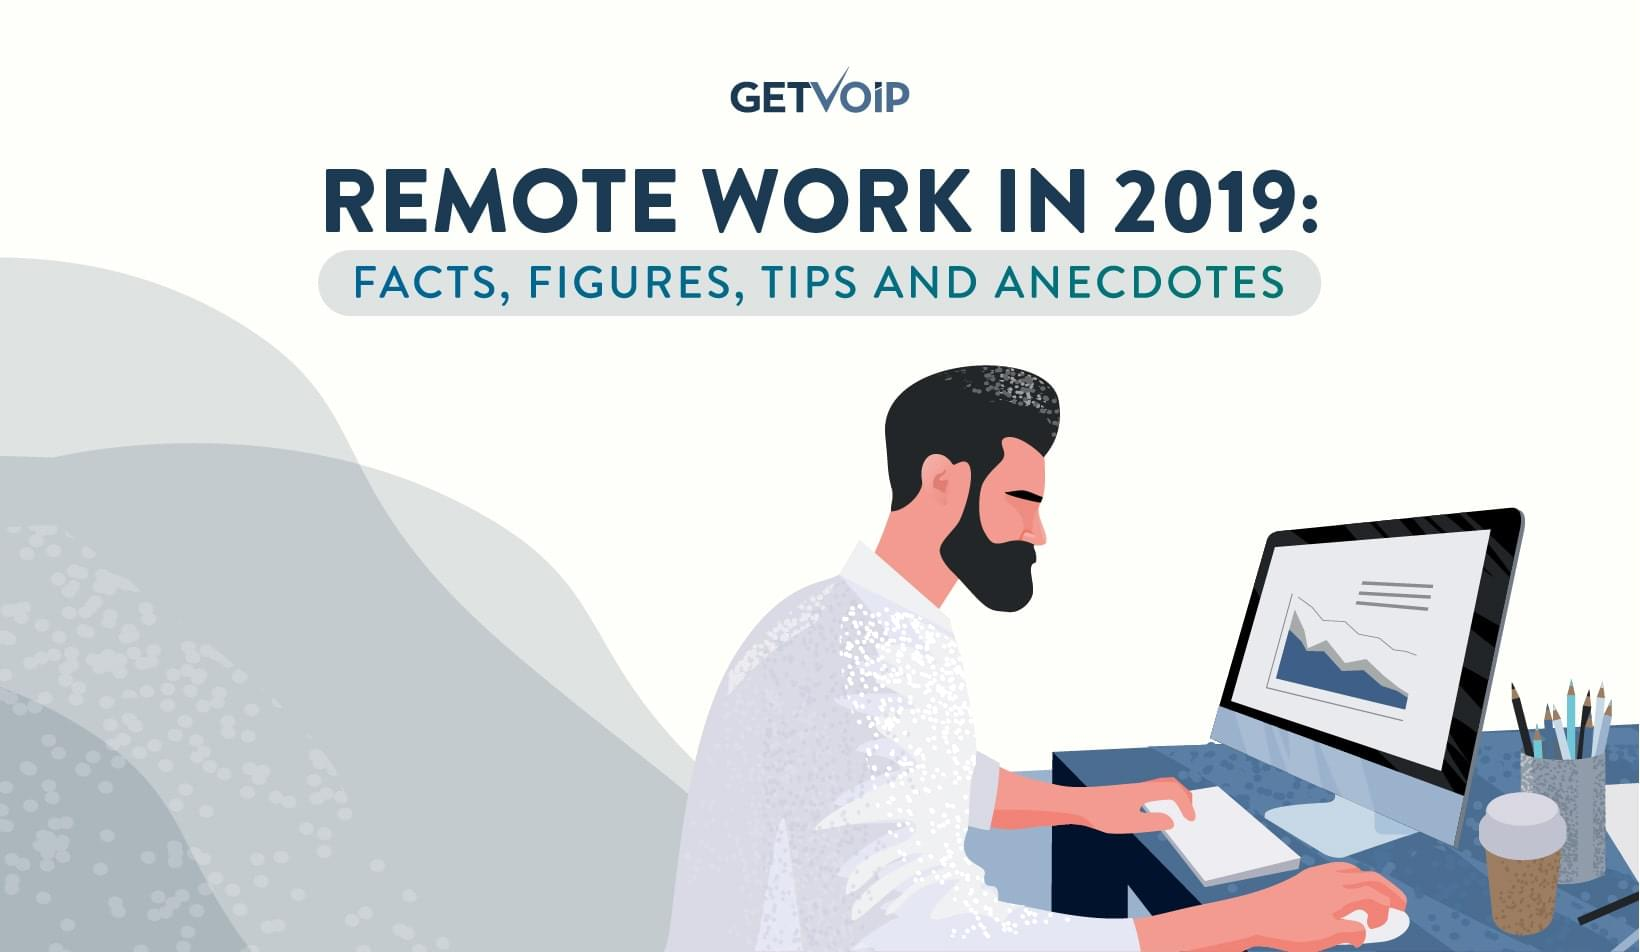 Remote Work in 2019: Facts, Figures, Tips and Anecdotes